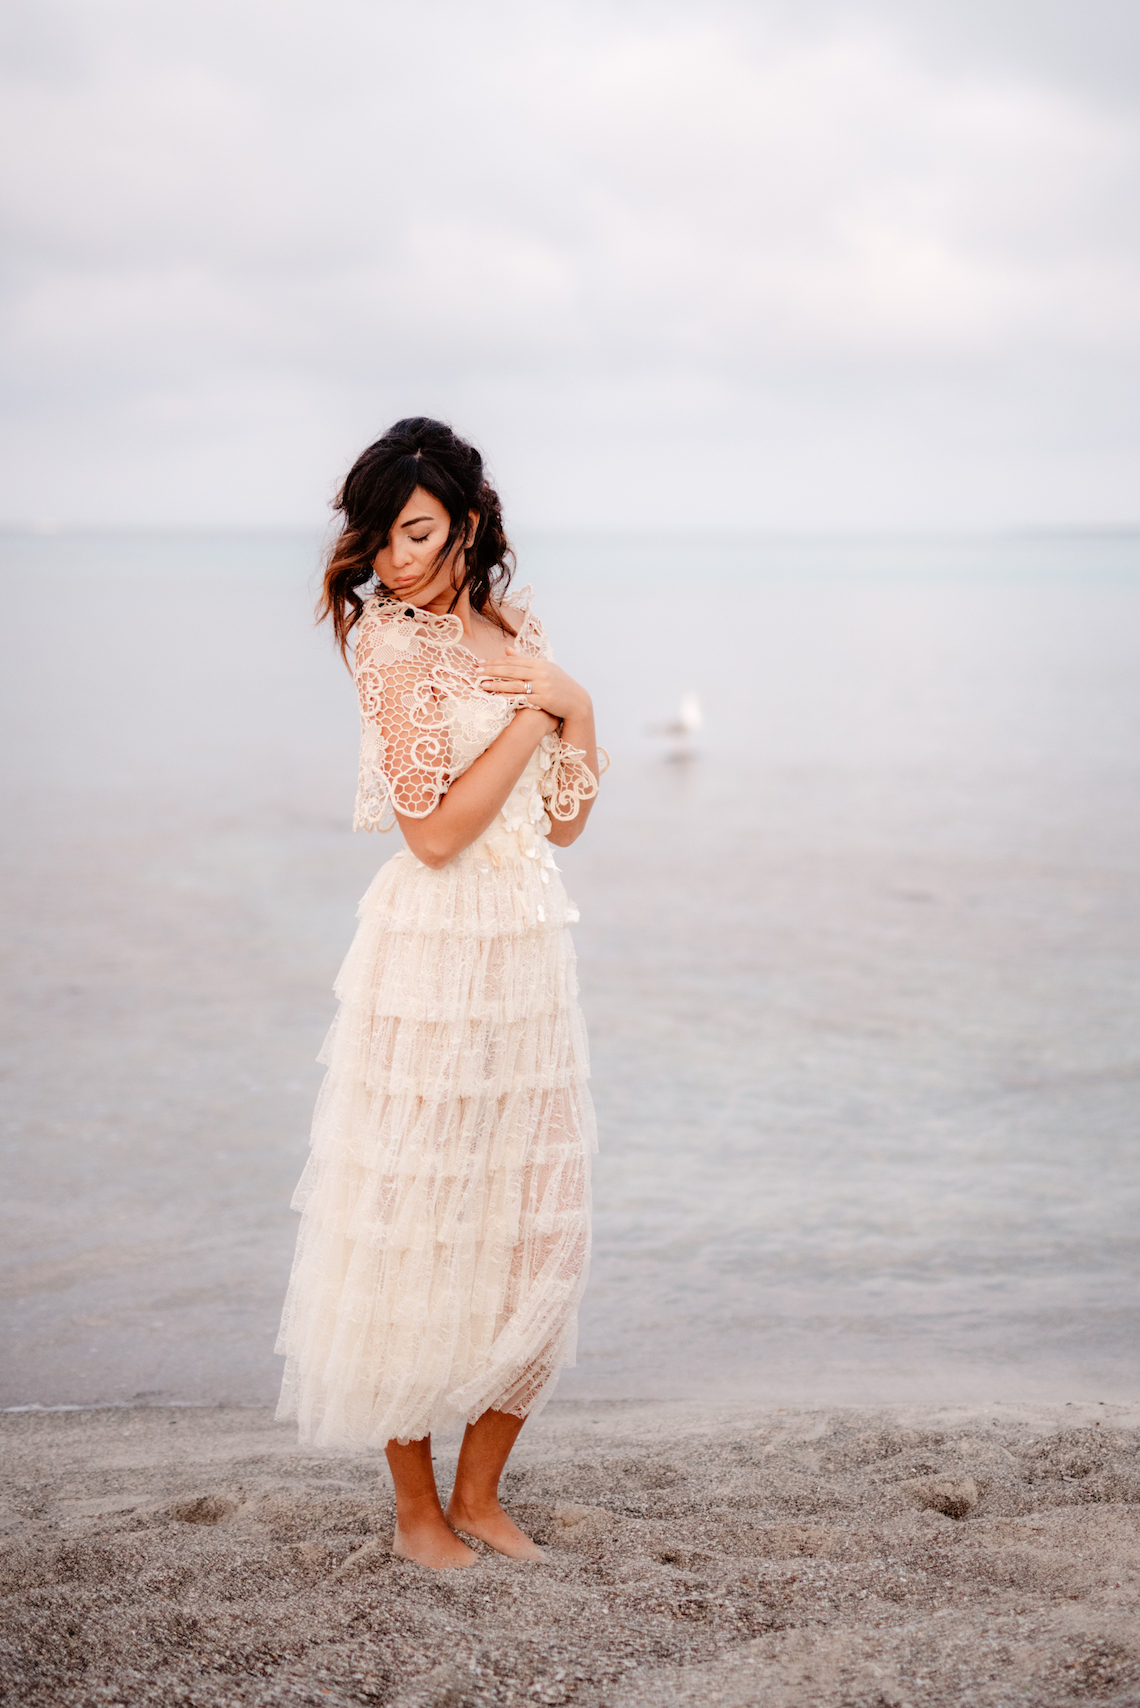 Shipwrecked; Seaside Elopement Inspiration From Sardinia | Valeria Mameli 31